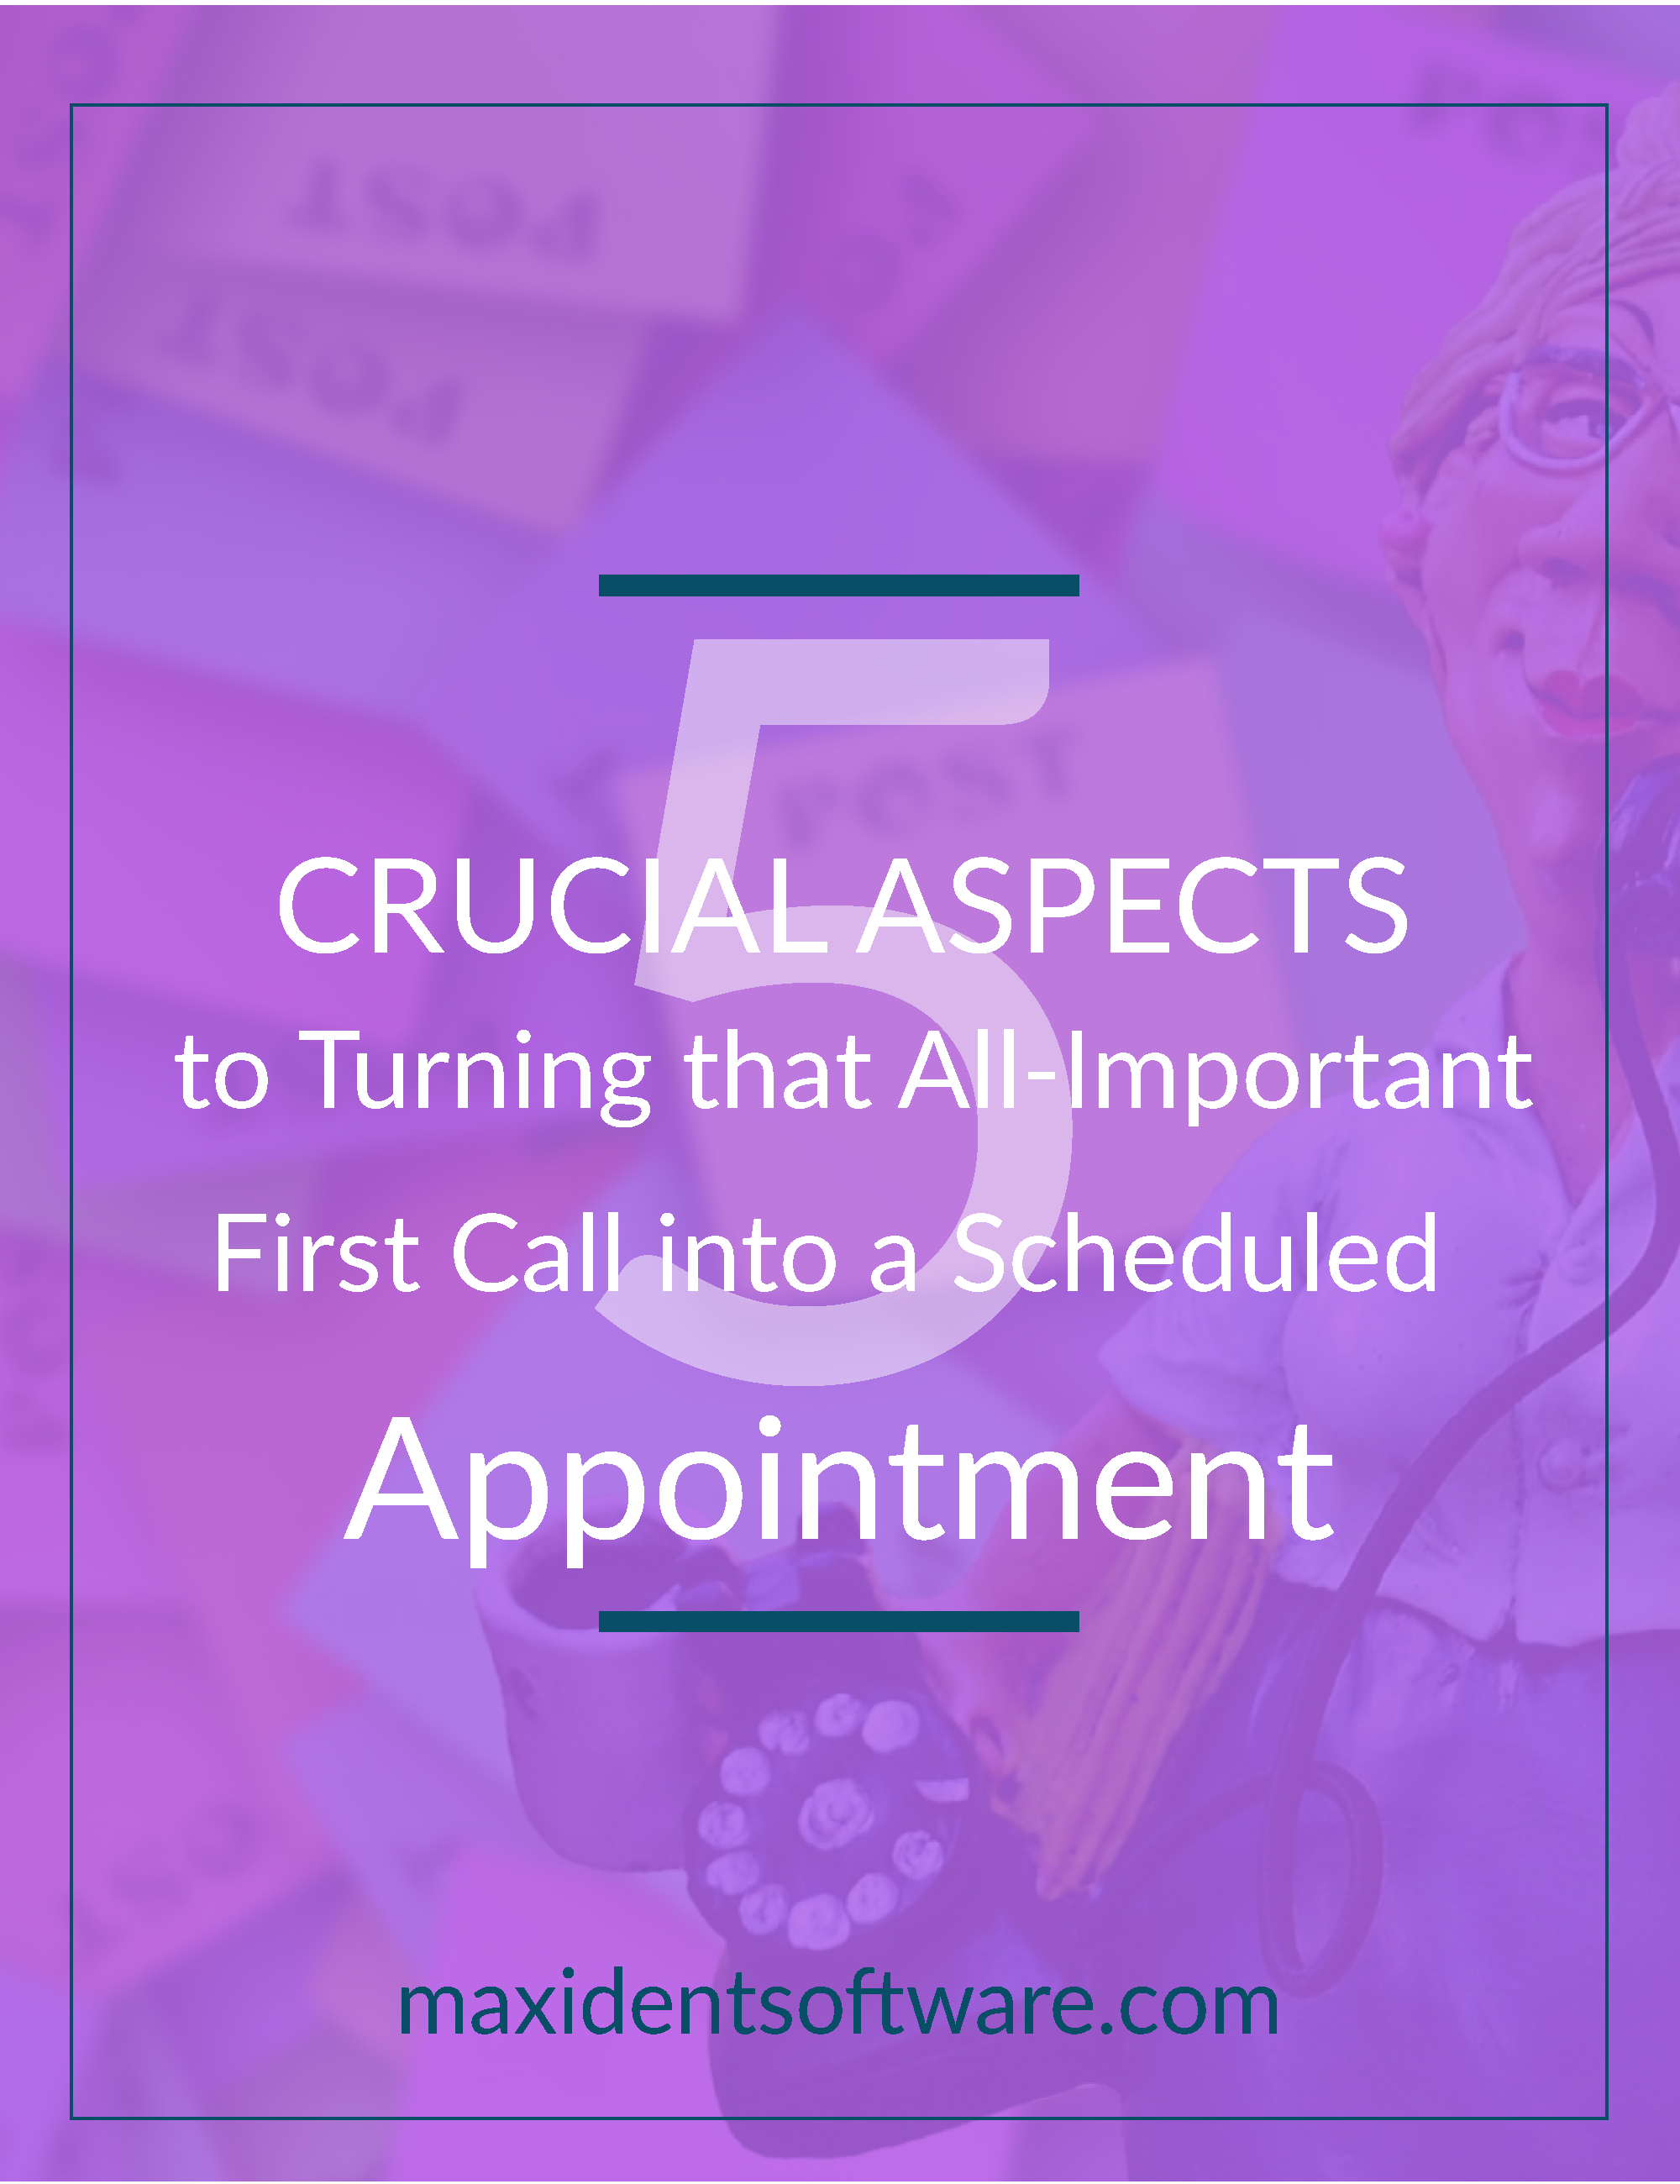 5 Crucial Aspects to Turning that All-Important First Call into a Scheduled Appointment